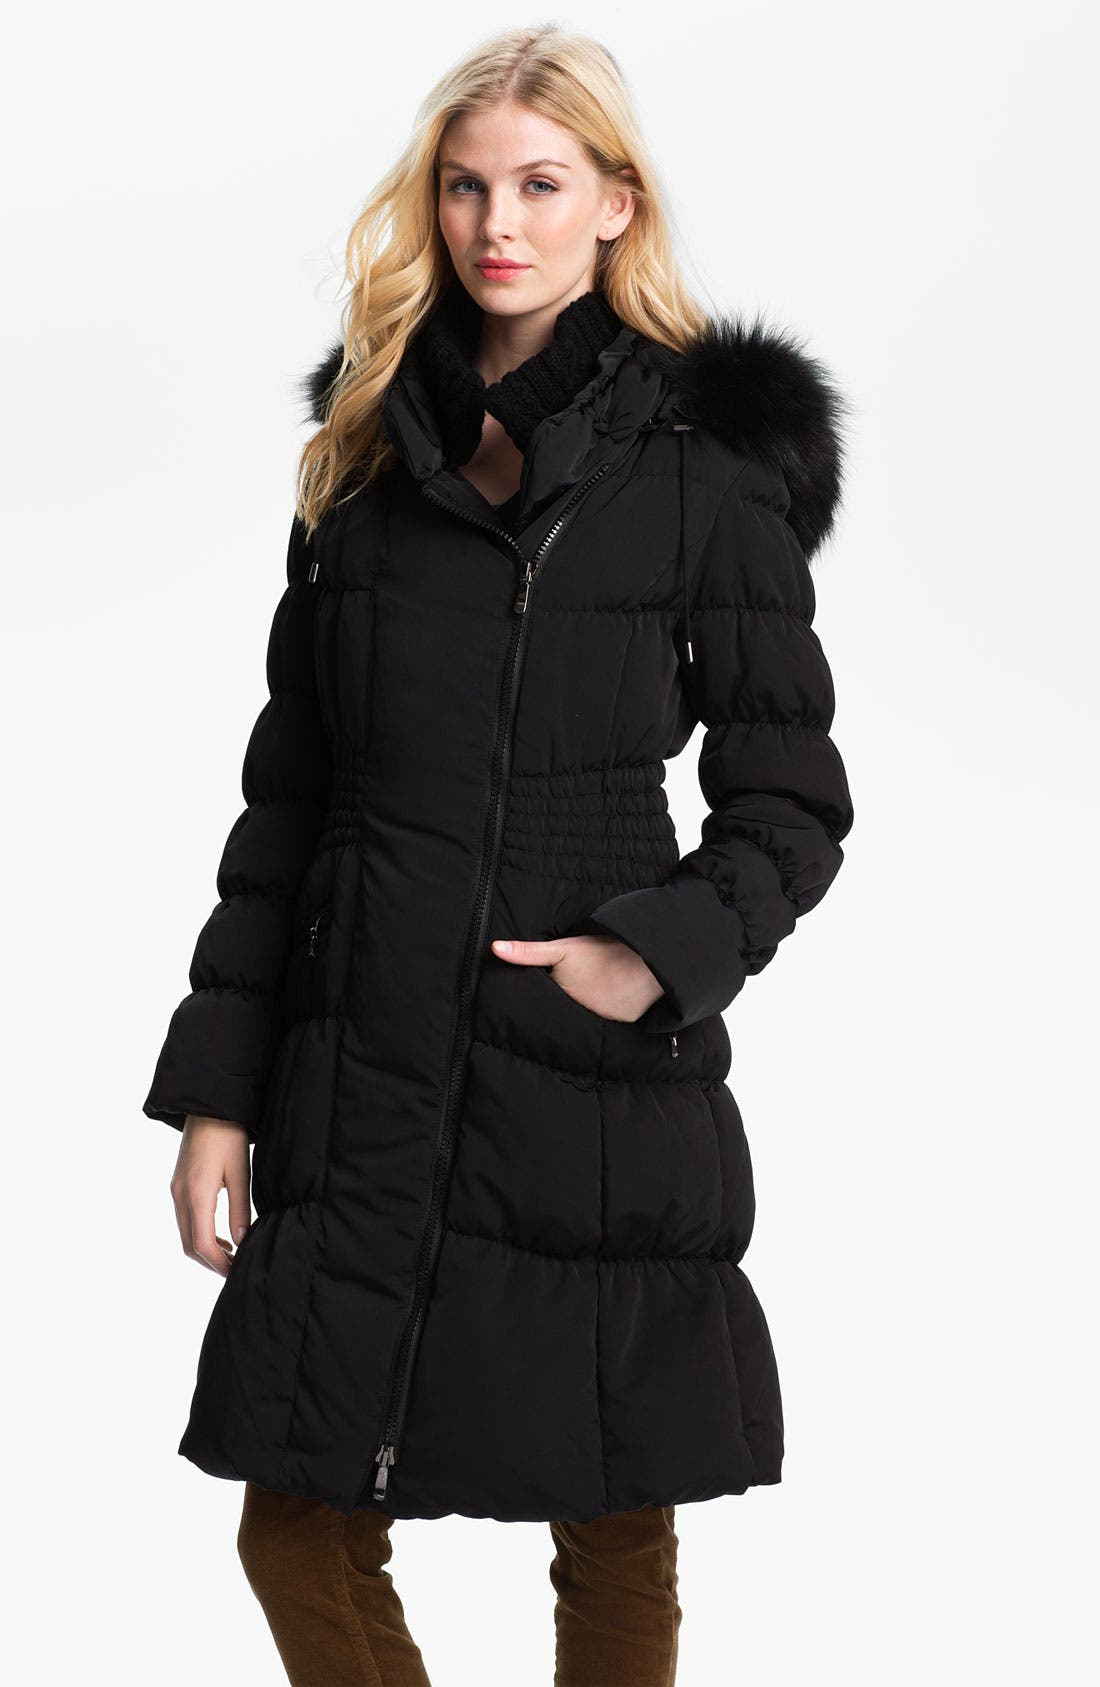 Main Image - 1 Madison Ruched Coat with Genuine Fox Fur